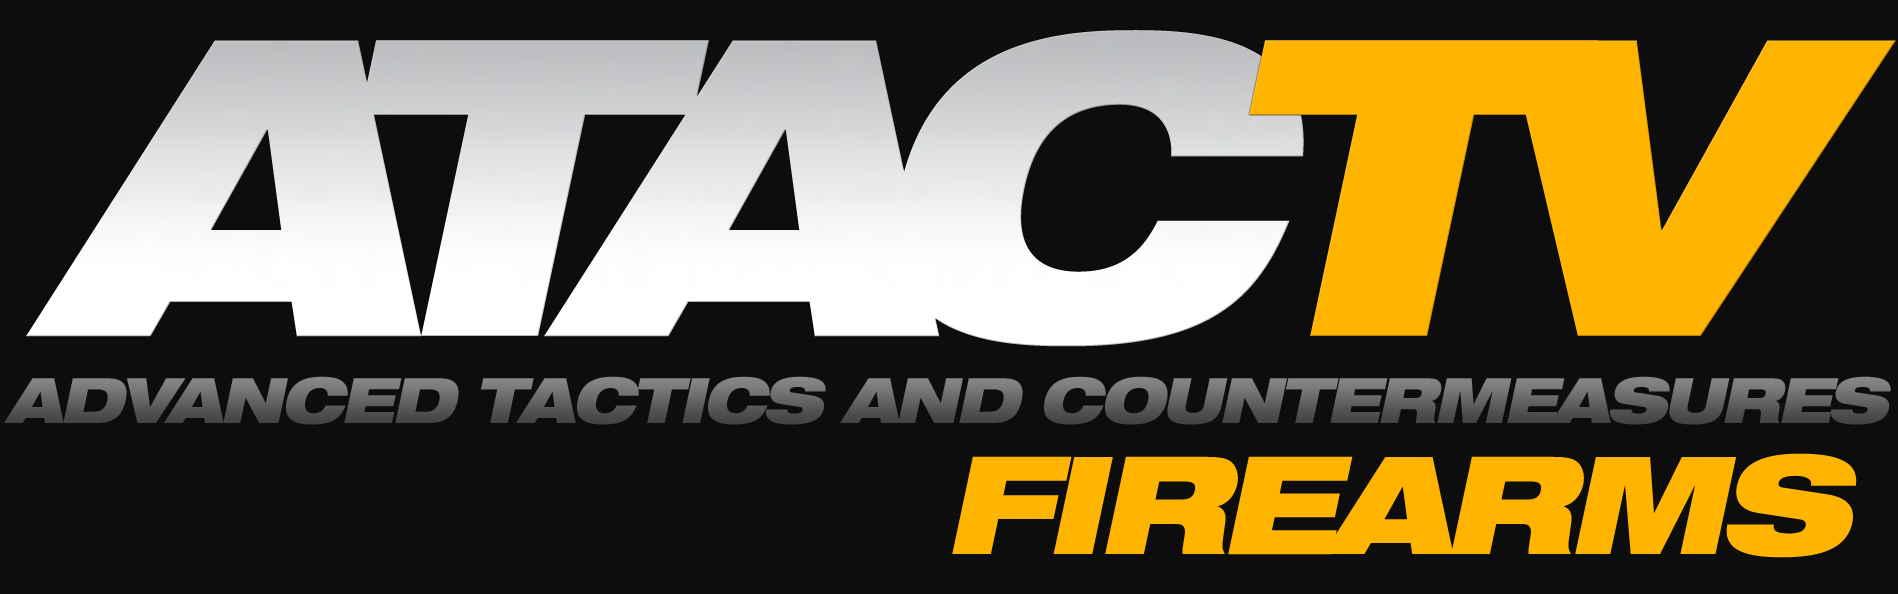 ATAC TVT Firearms Channel